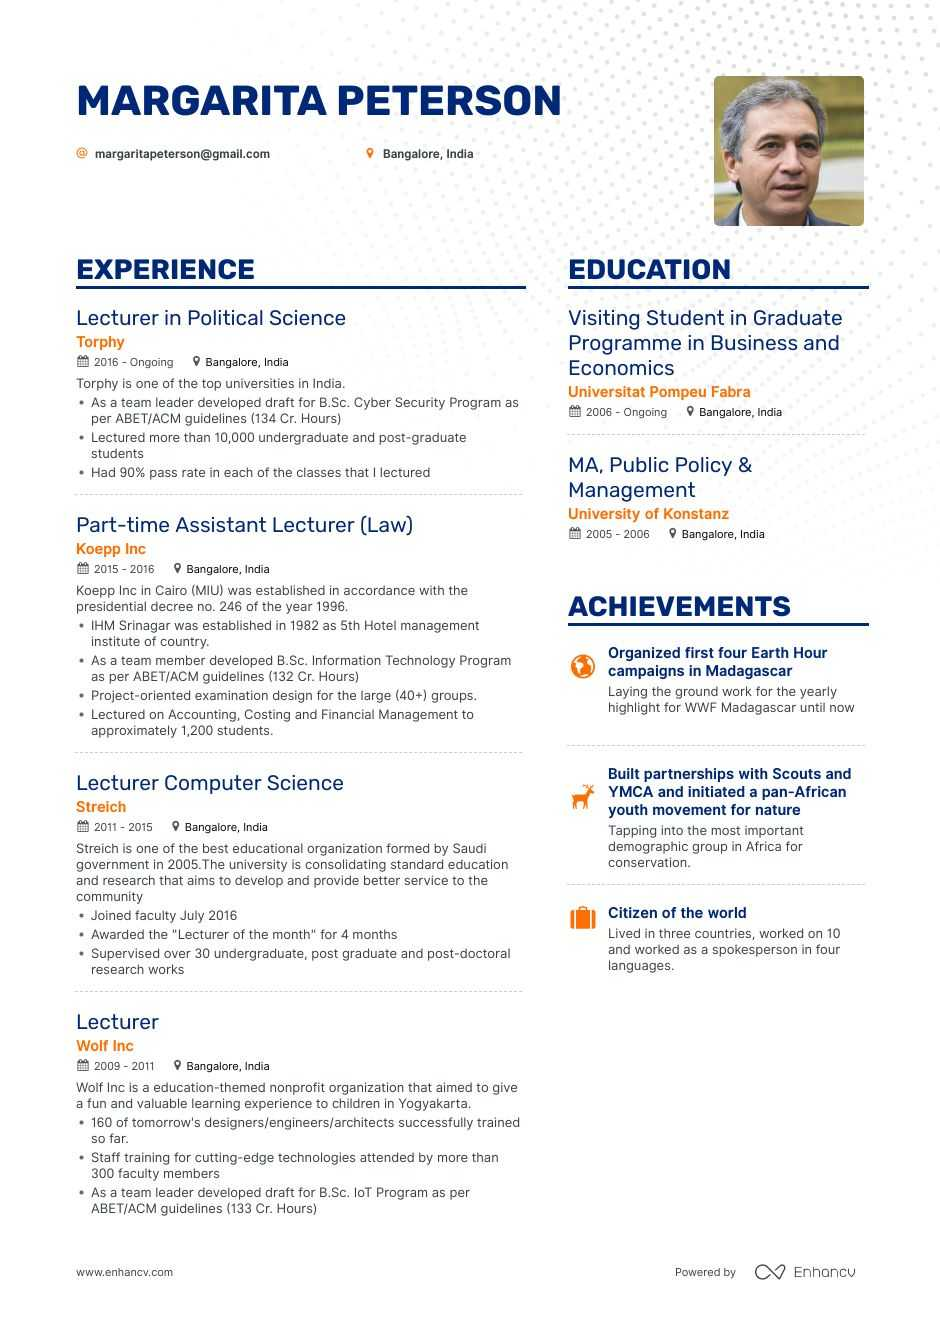 lecturer resume example for enhancv experience h1b driver helper sample free builder Resume Lecturer Experience Resume